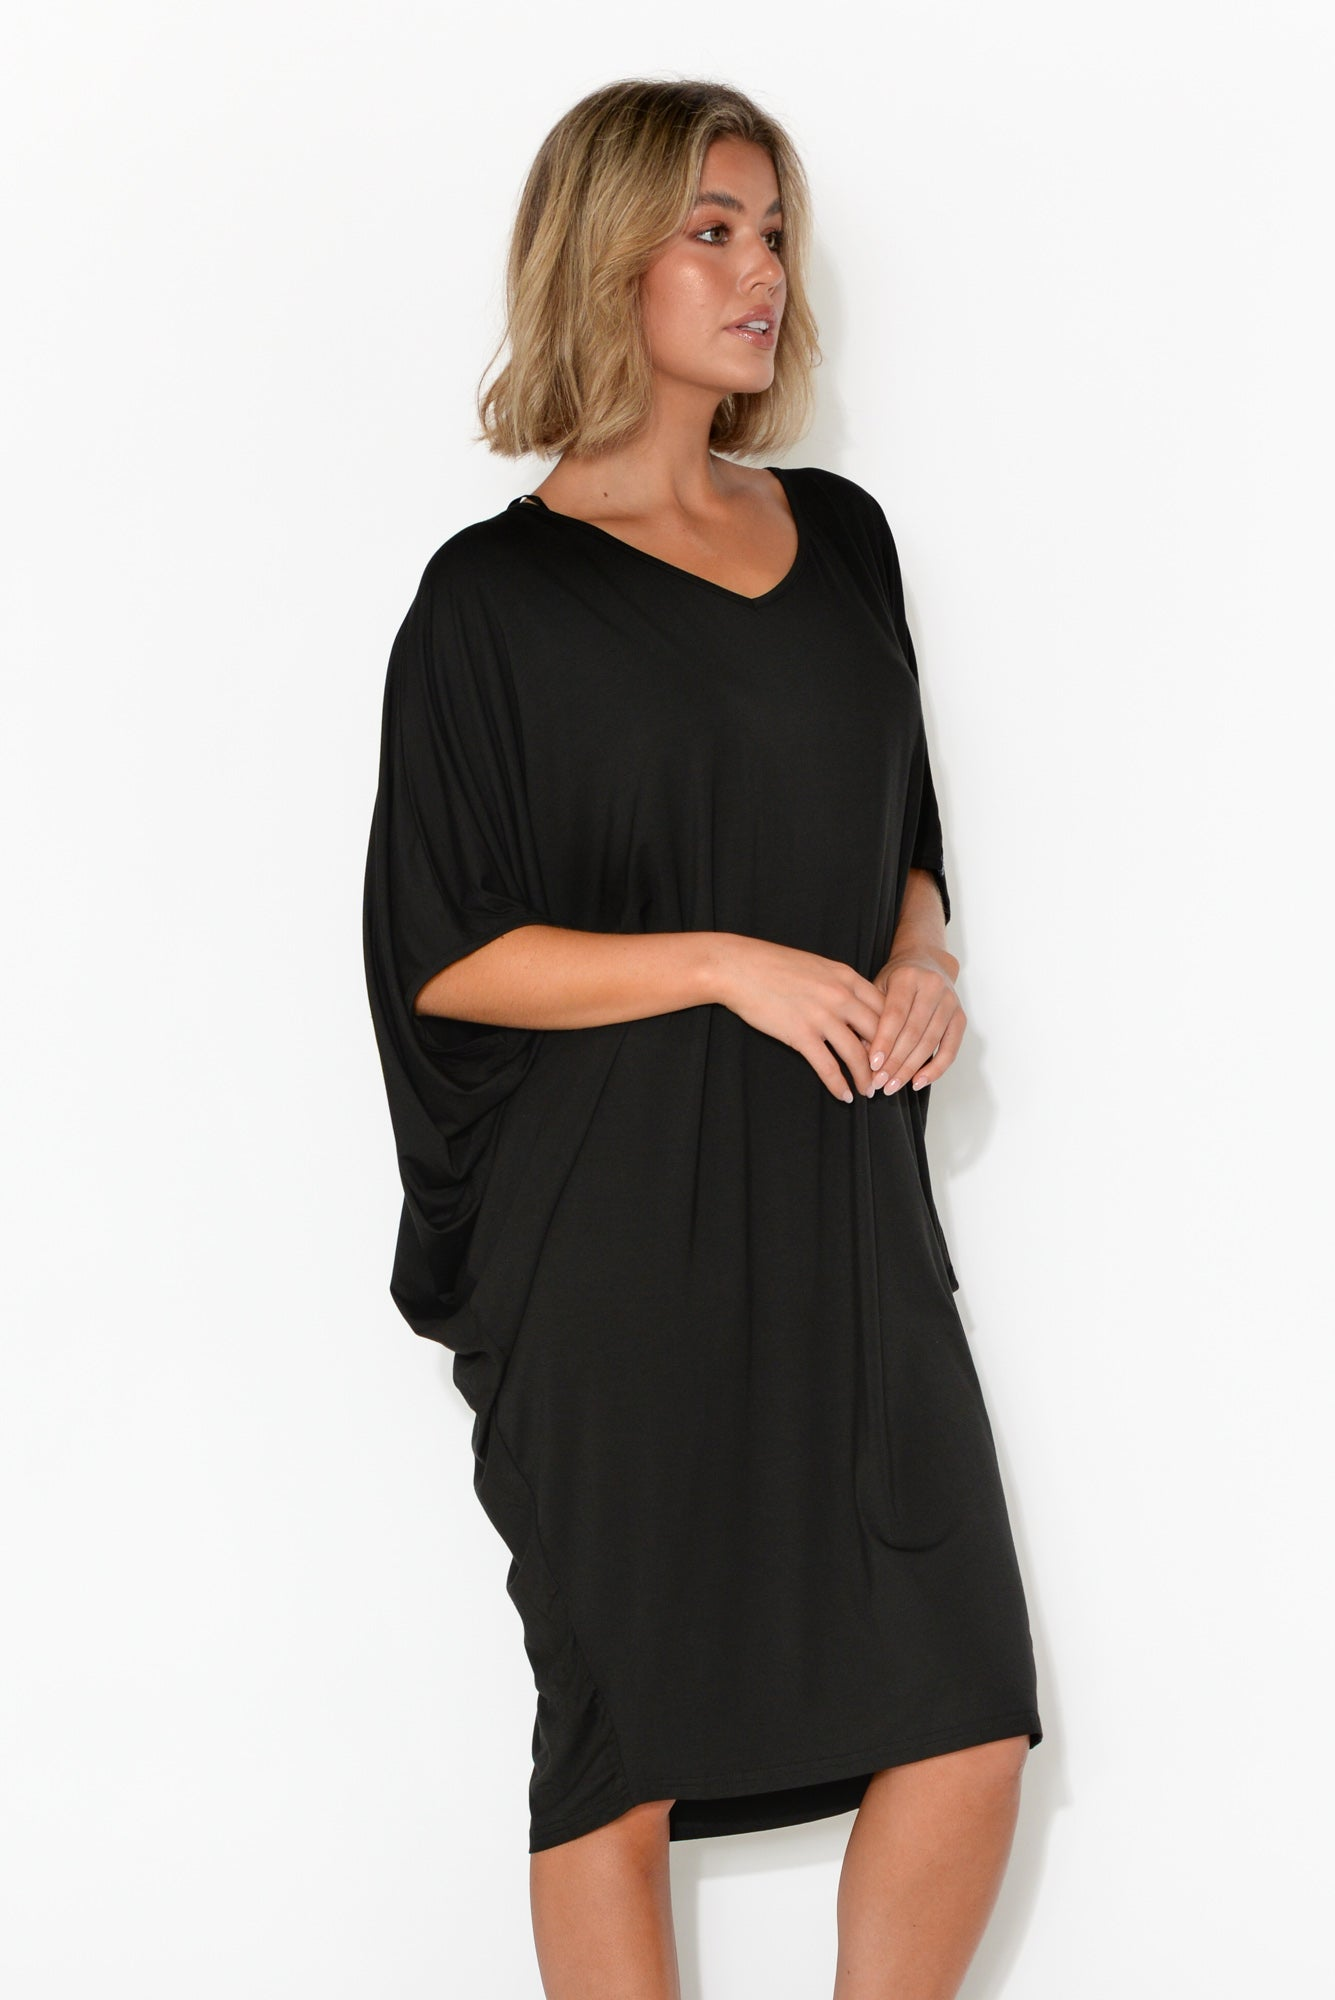 Freya Black Bamboo Batwing Dress